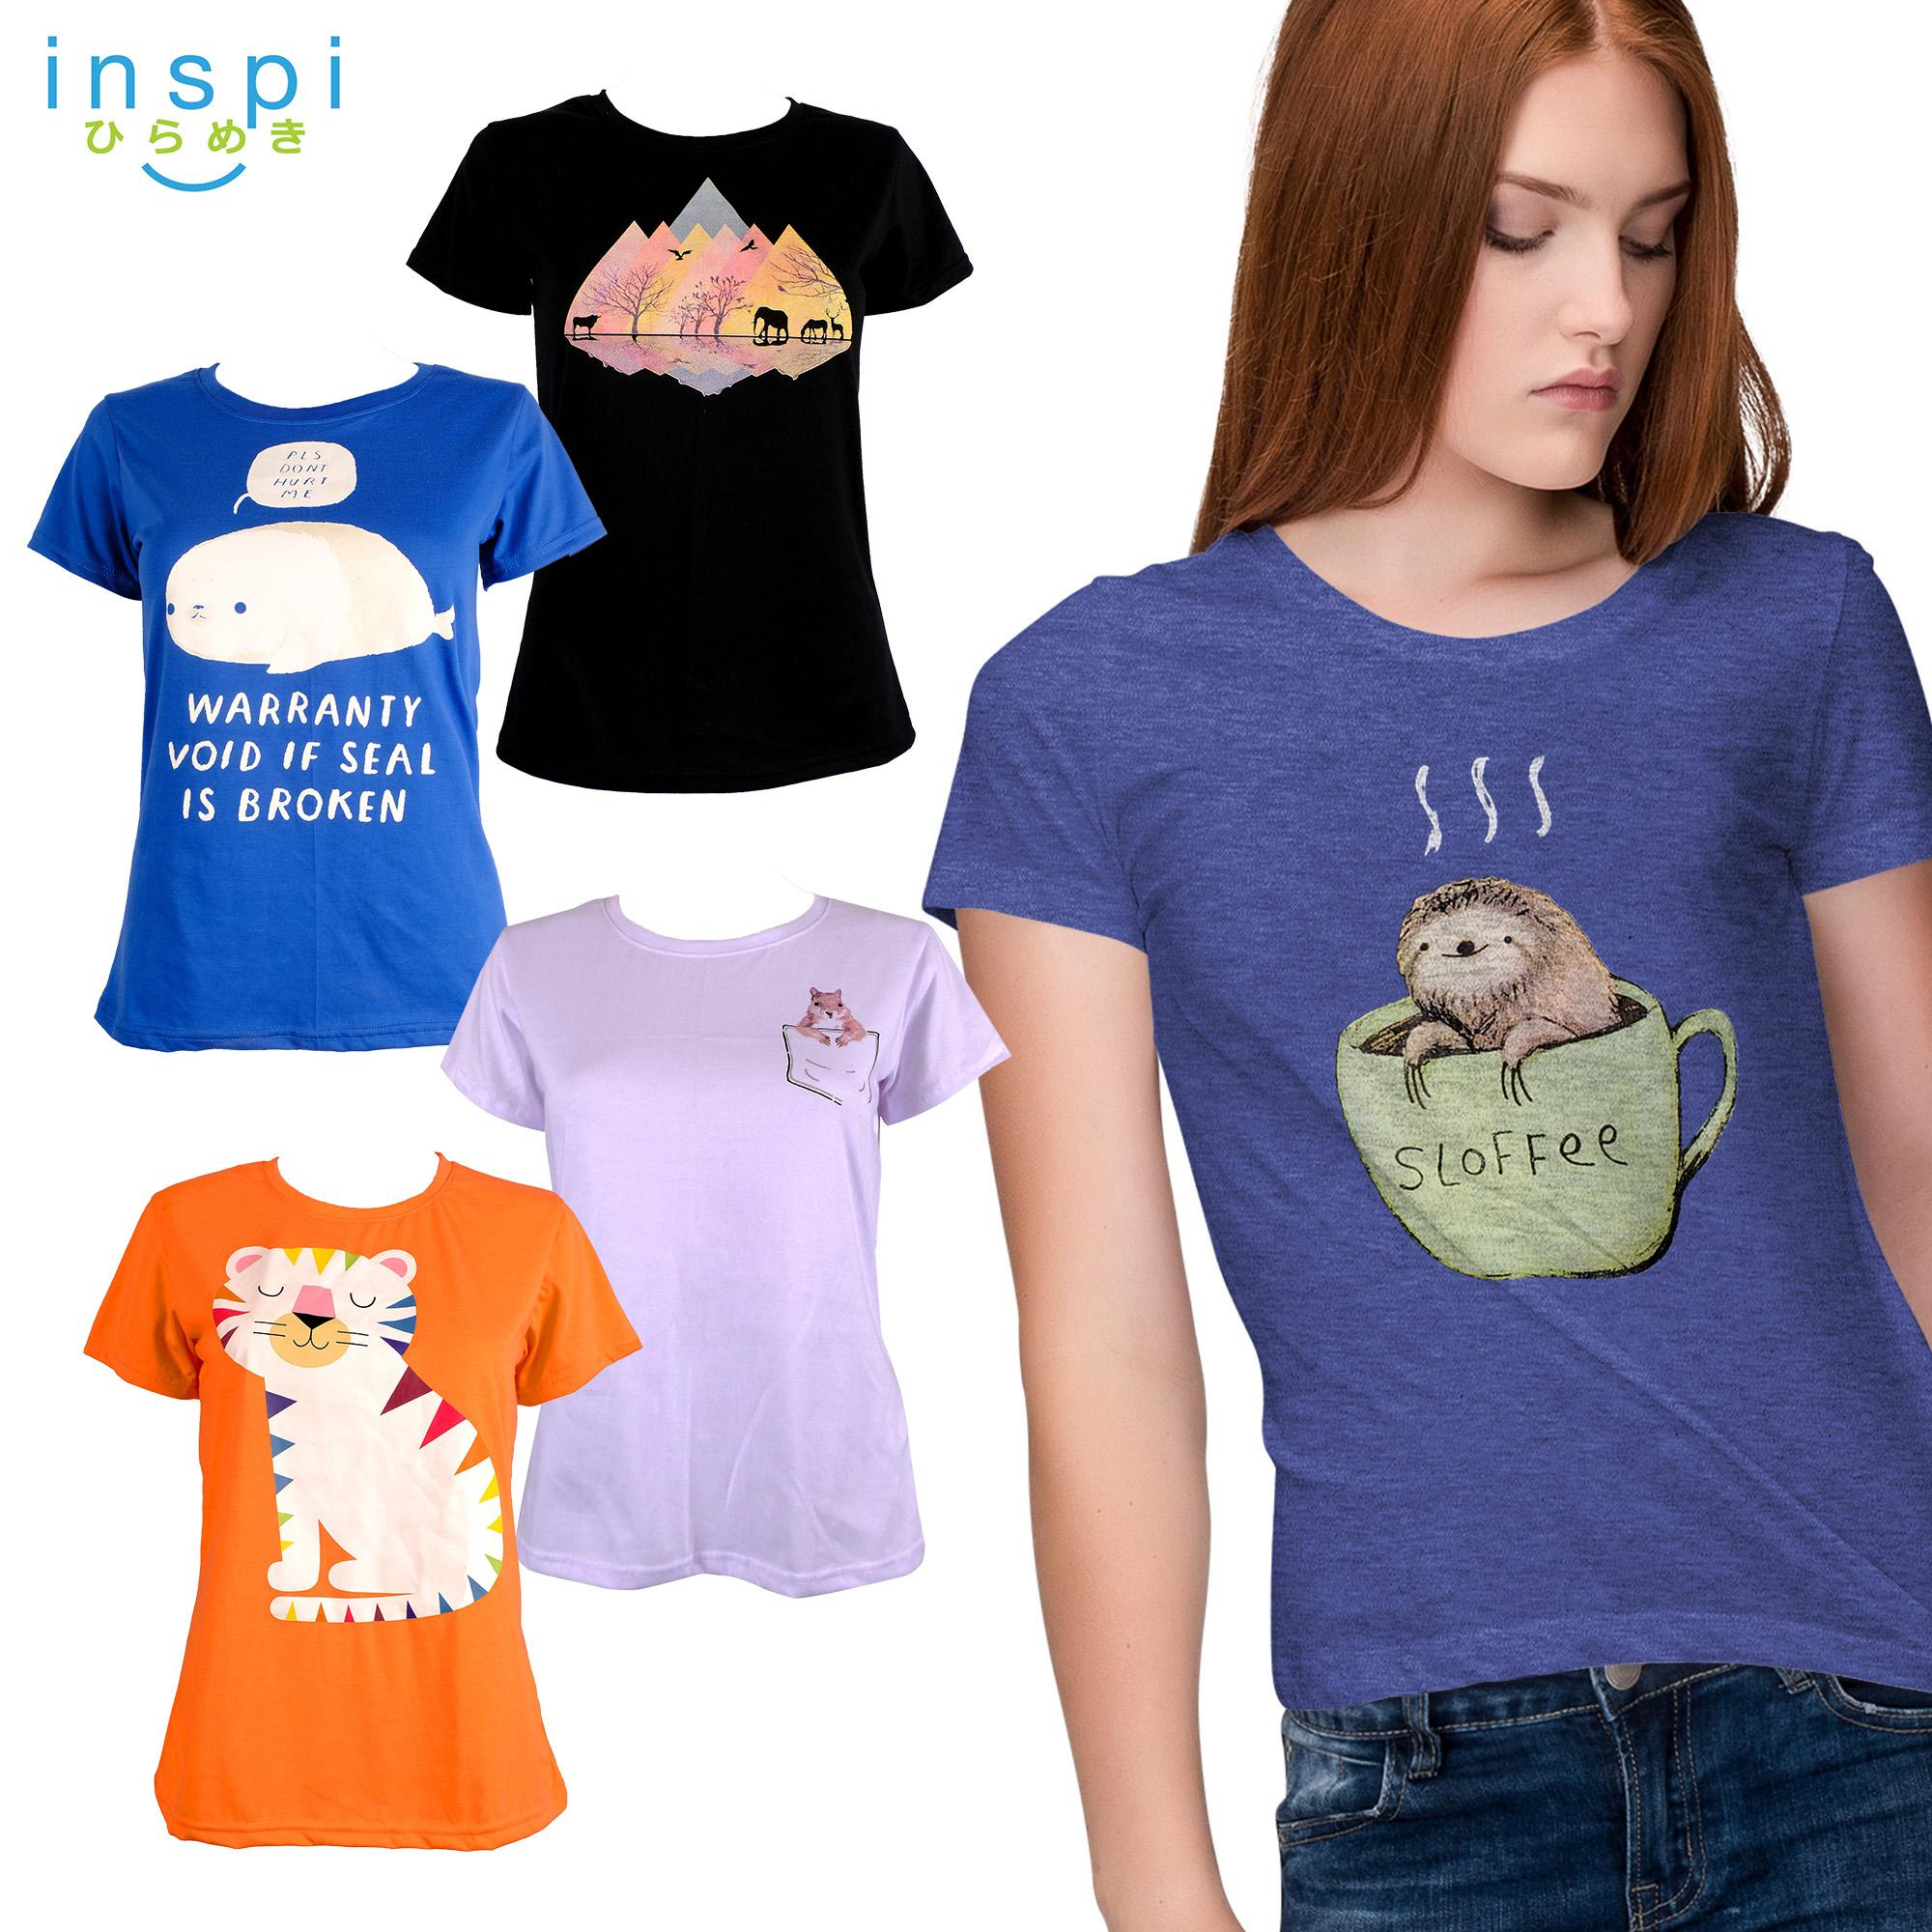 81df03f0d946 INSPI Tees Ladies Pet Collection tshirt printed graphic tee Ladies t shirt  shirts women tshirts for